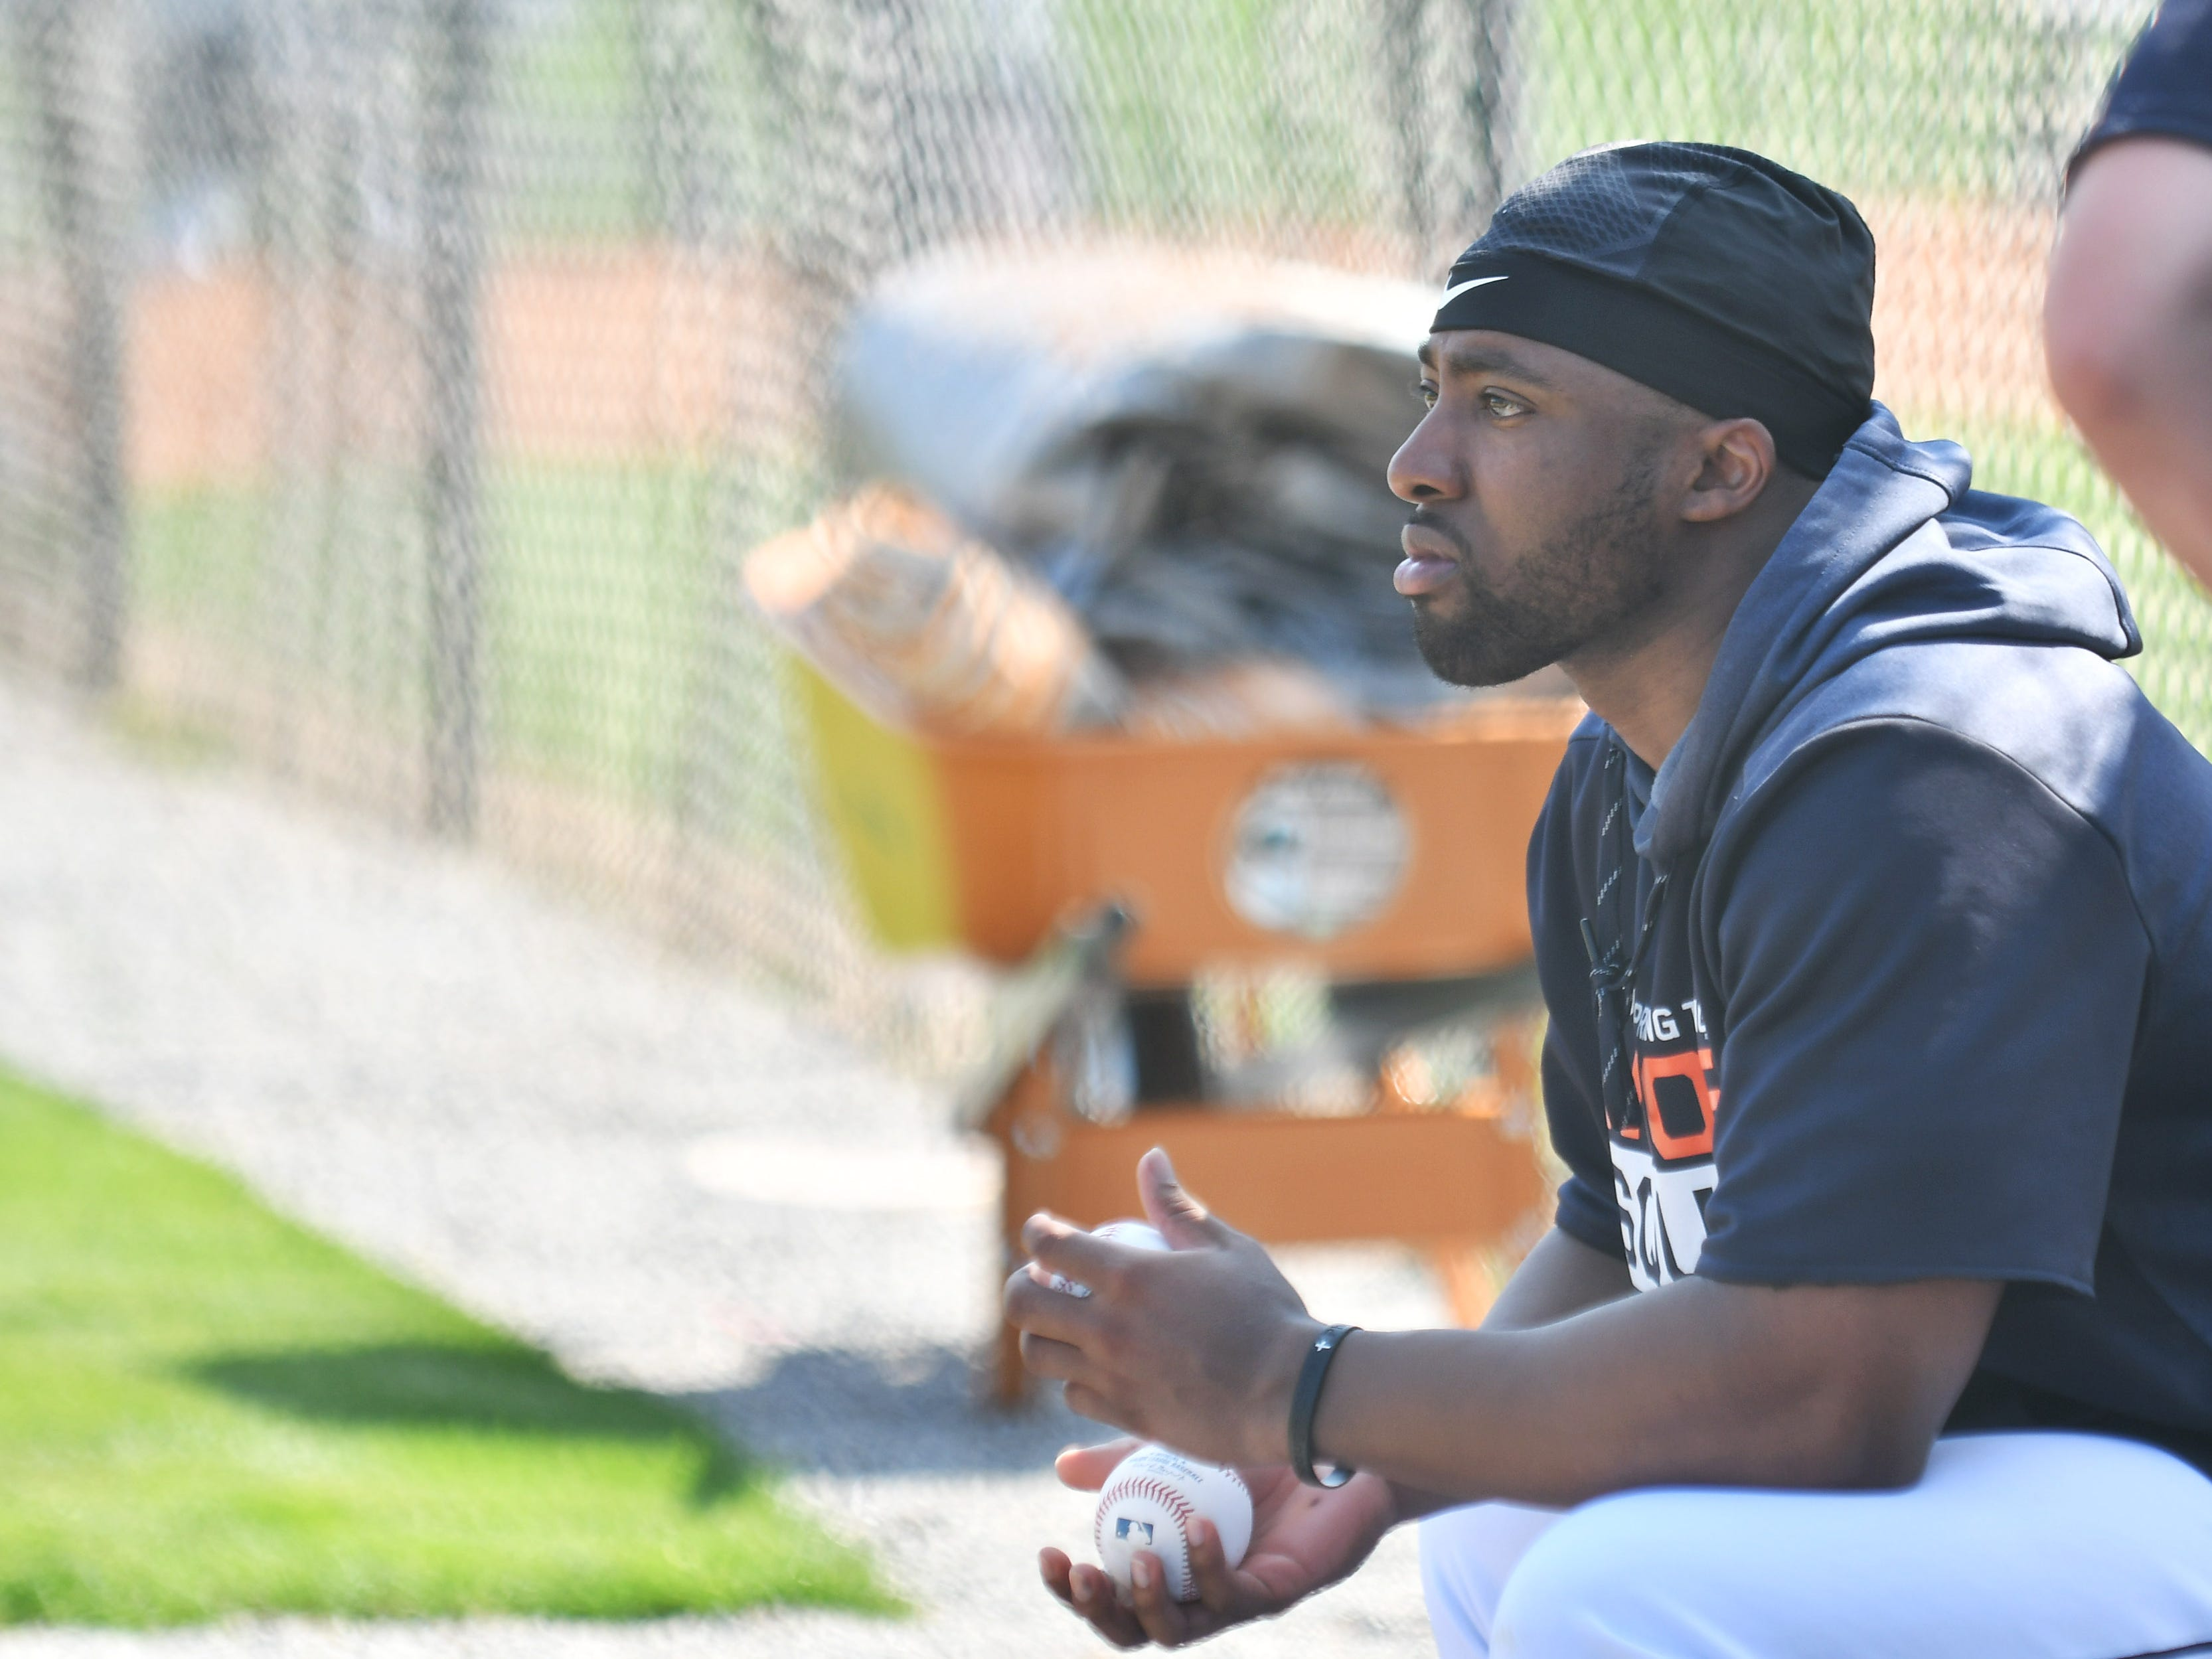 A penny for the thoughts of Tigers' Christin Stewart as he watches live batting practice.